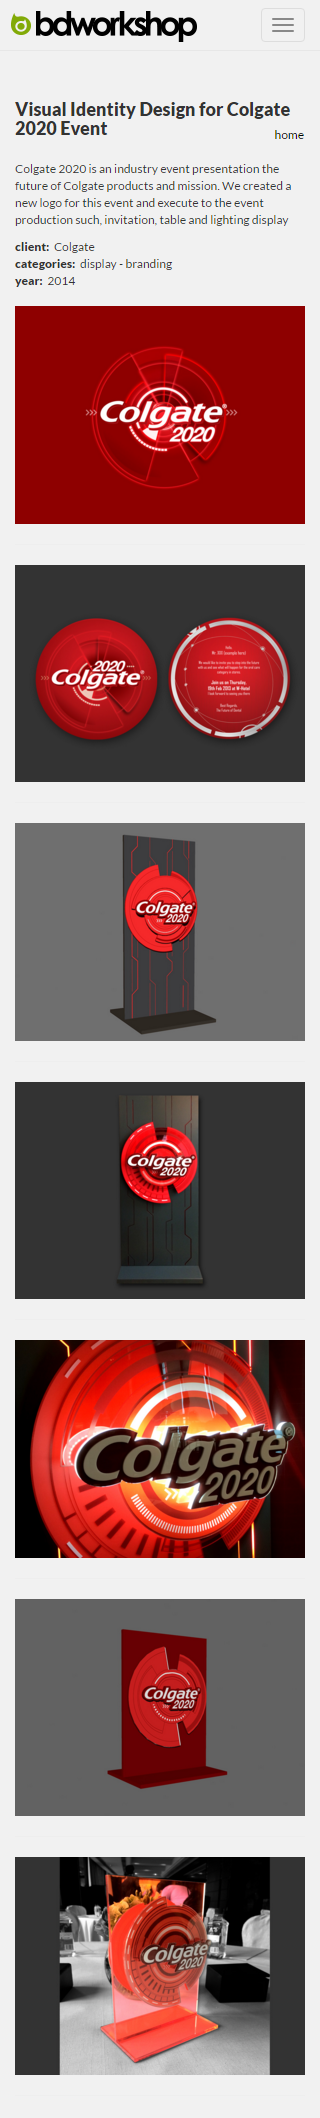 Bdworkshop Website Revamp | Project Page - Visual Identity Design for Colgate 2020 Event